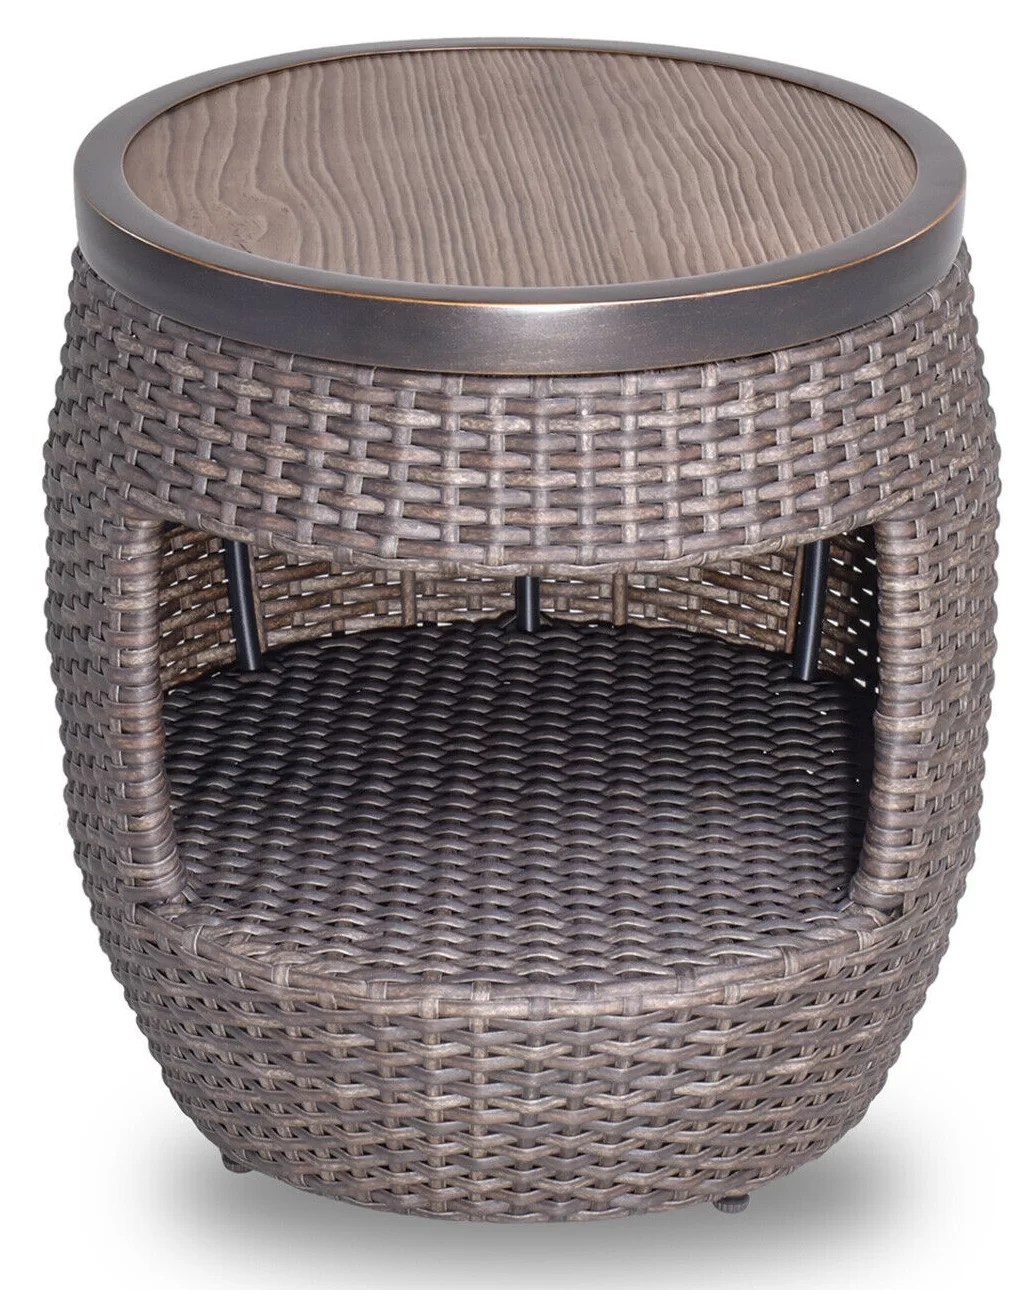 20 round all weather wicker coffee table outdoor patio garden furniture